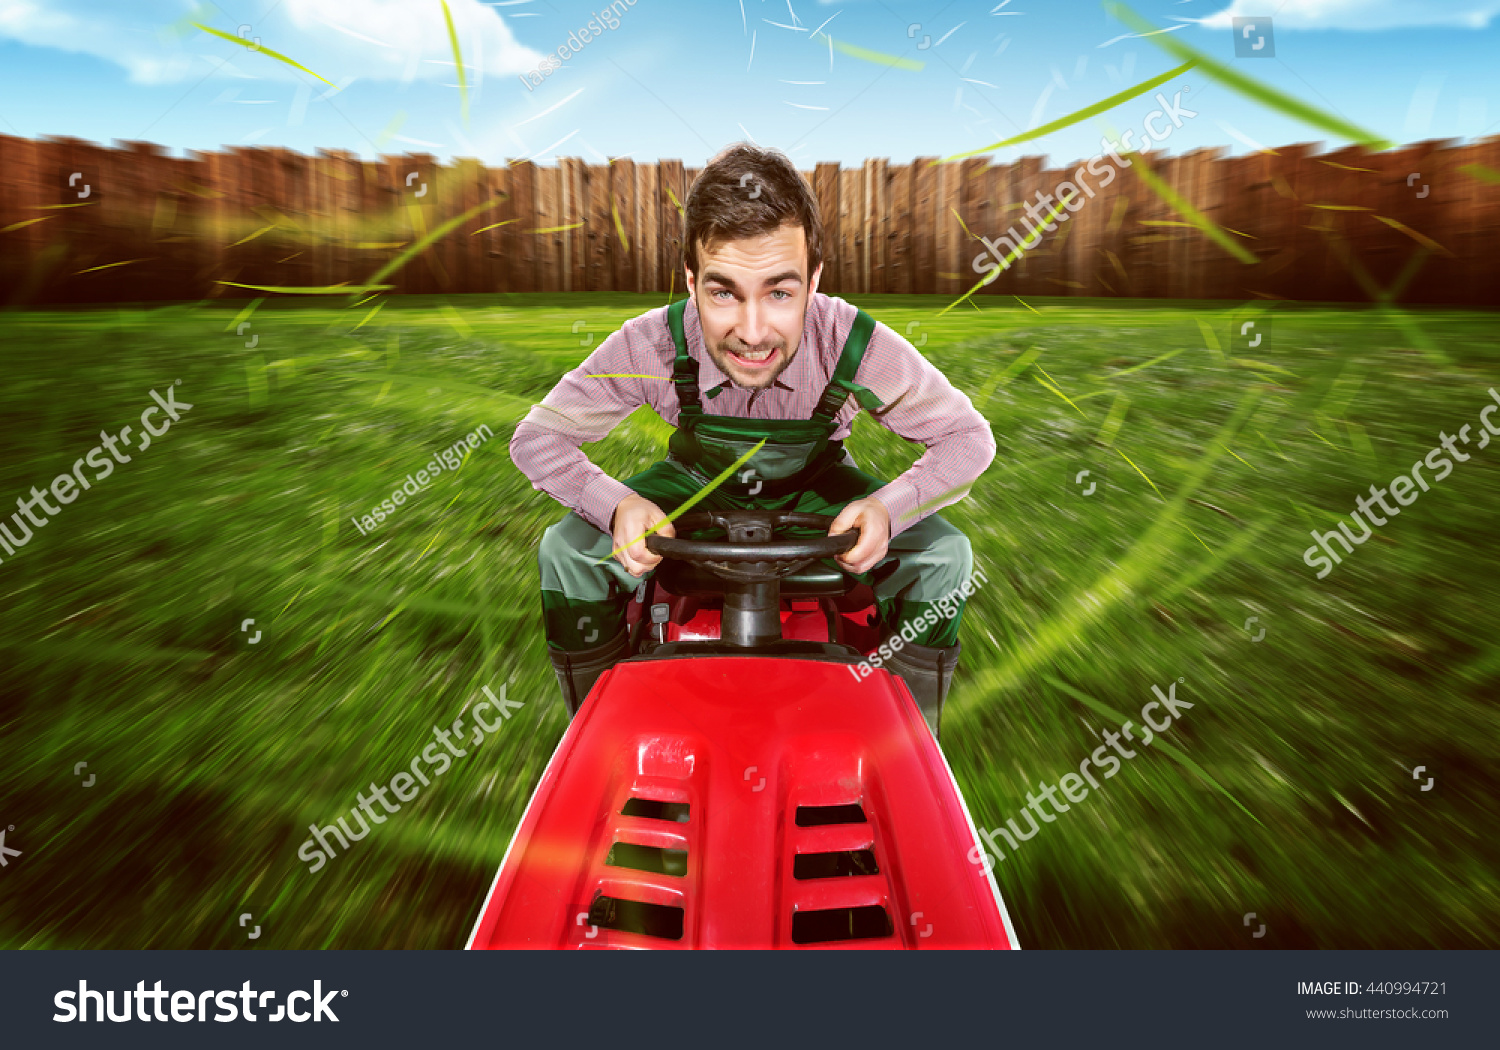 Man On Tractor Lawn Enforcment : Man on a lawn tractor stock photo shutterstock